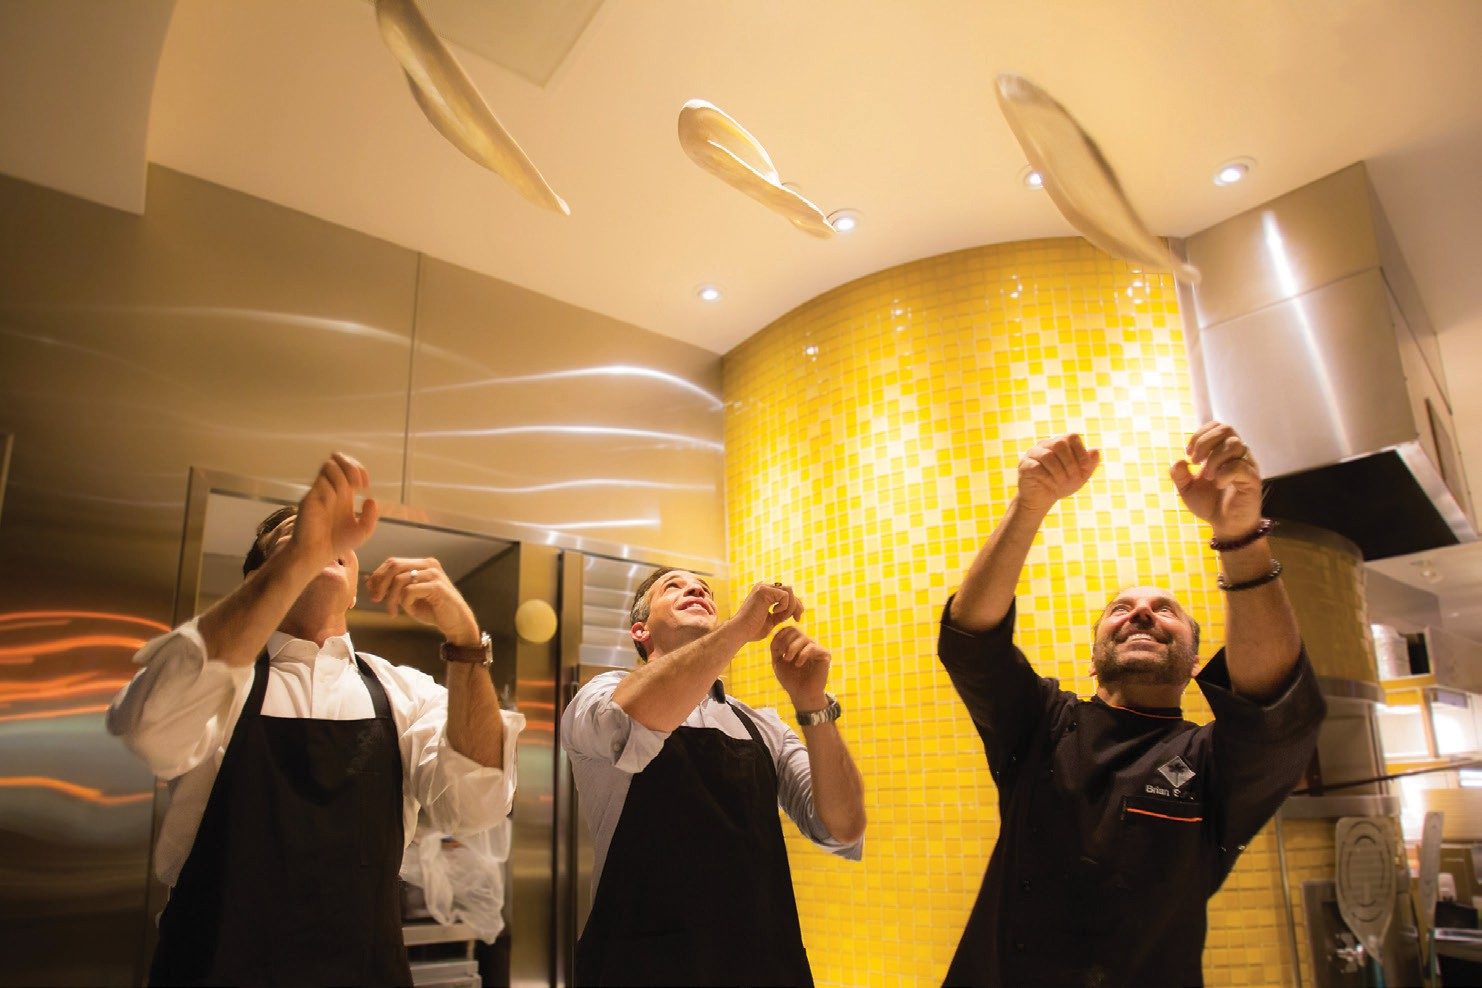 The evening ended with some lessons in pizza tossing from CPK Executive Chef, Brian Sullivan.